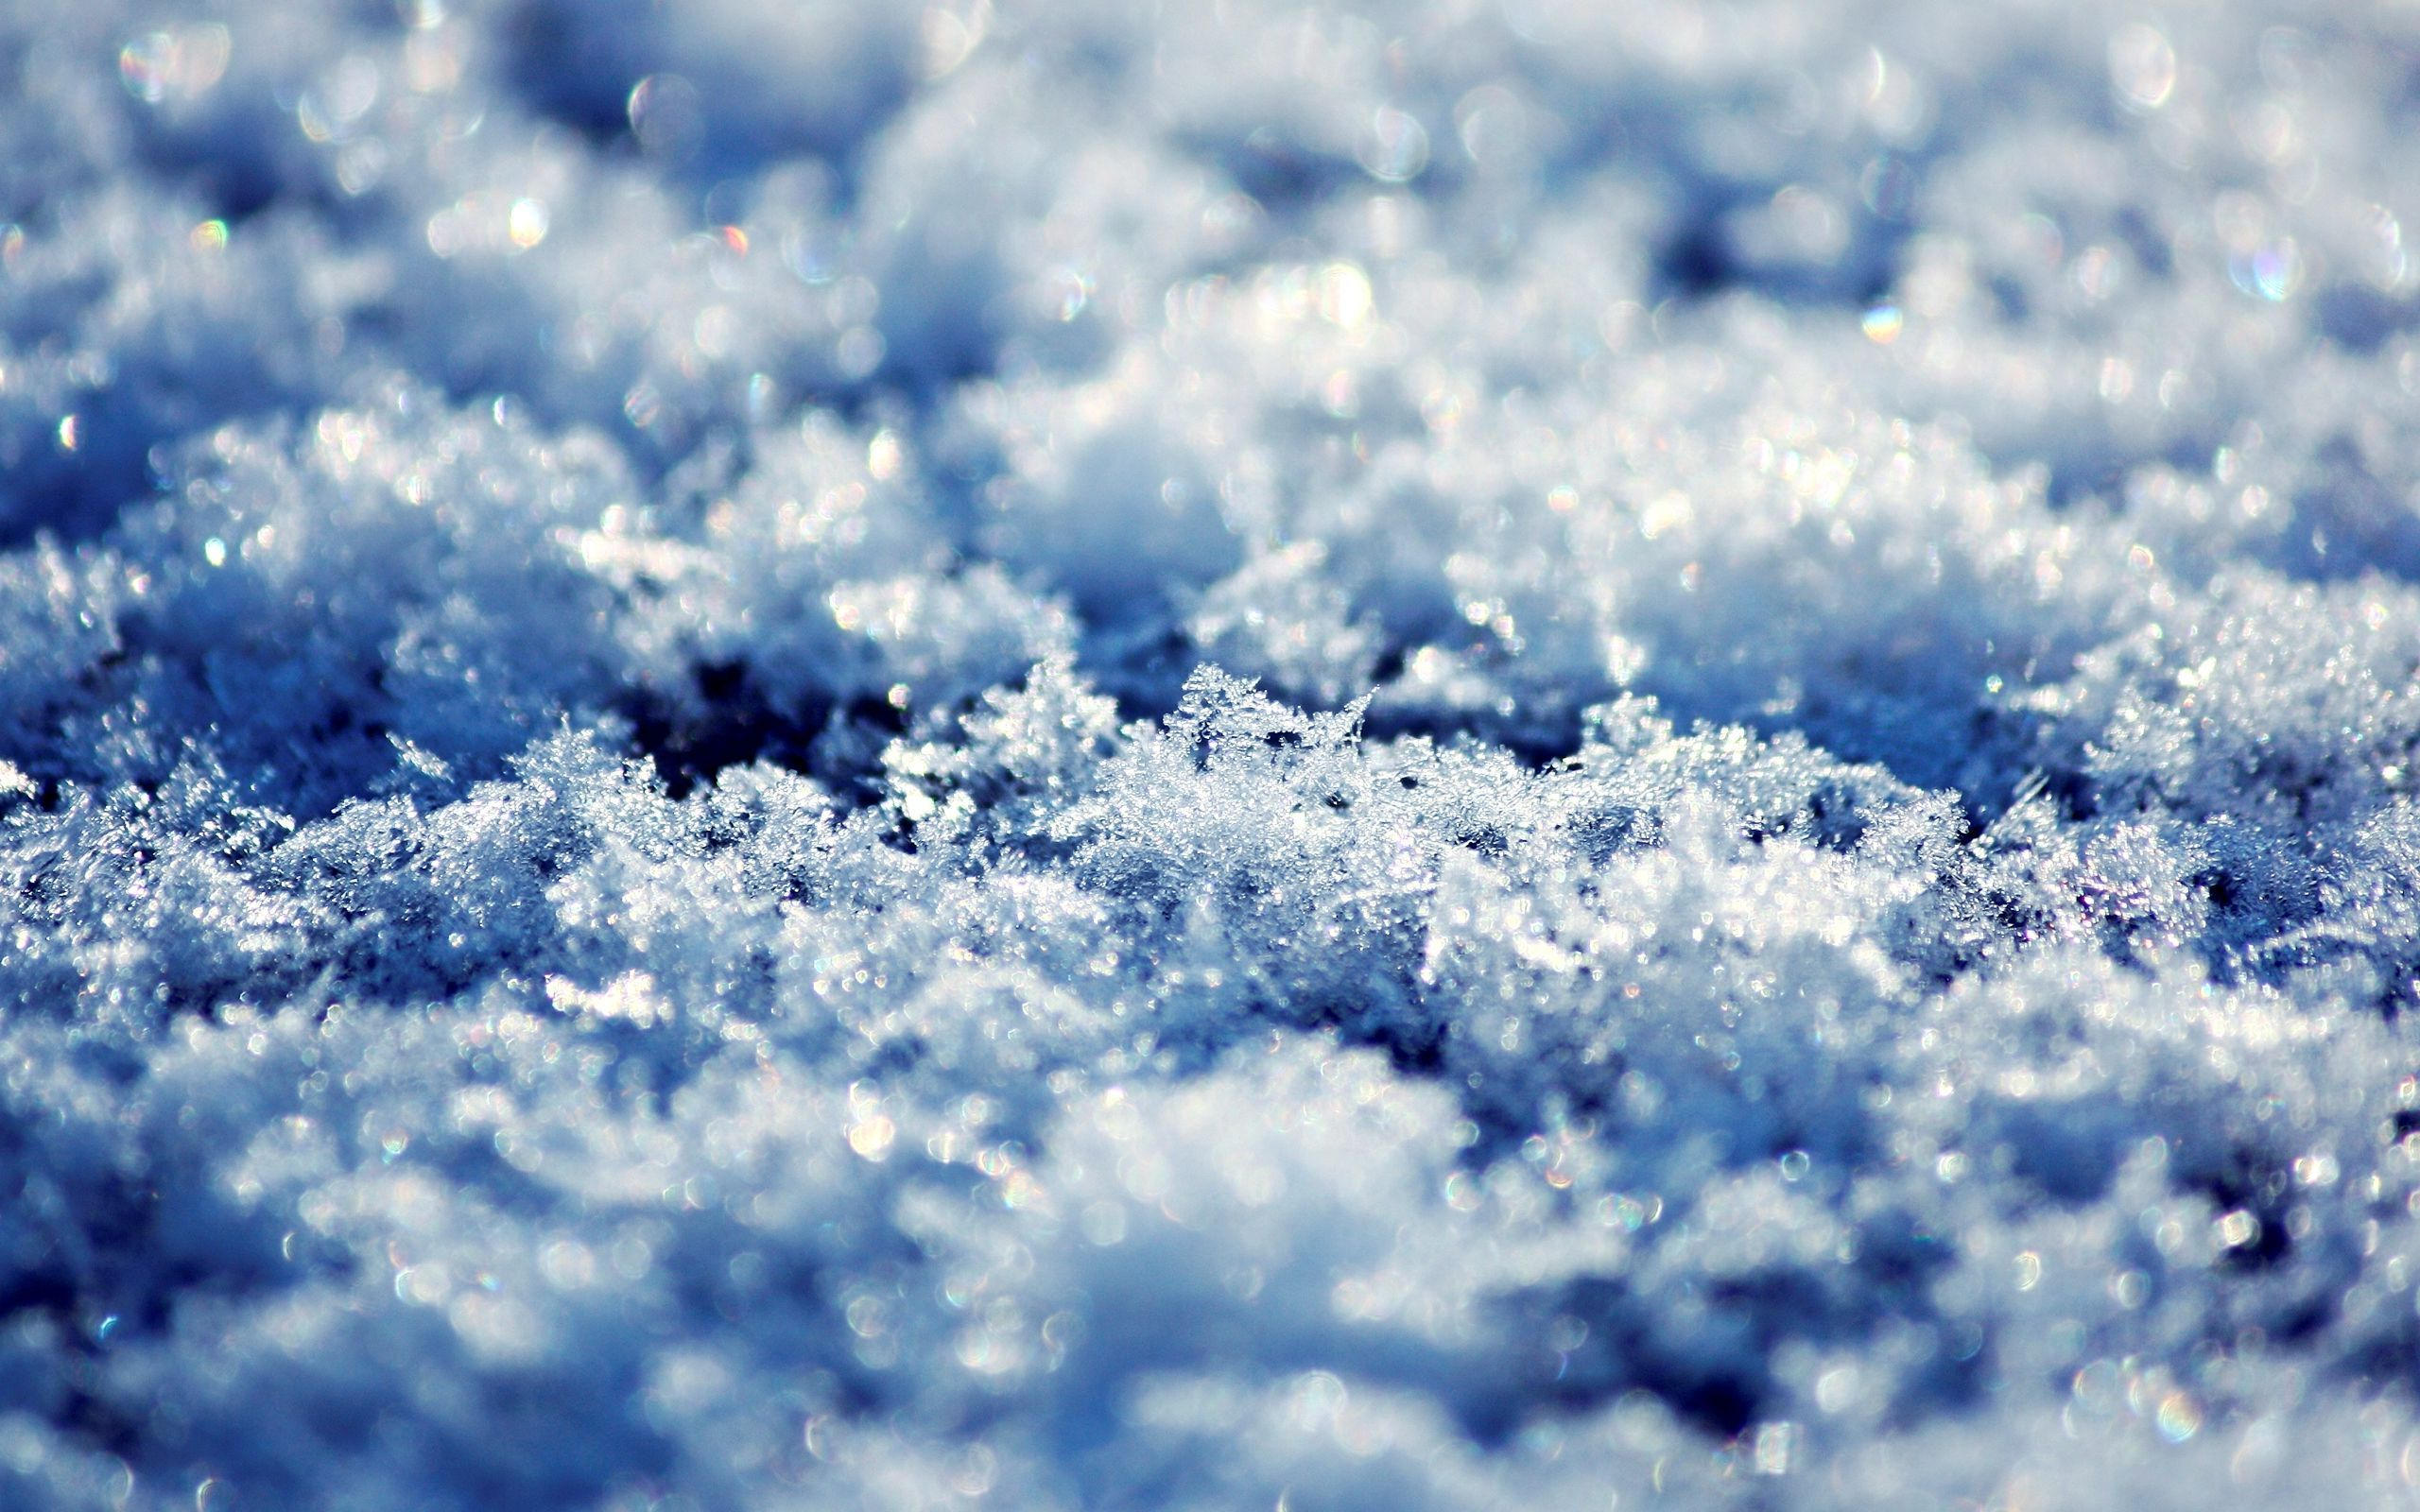 Snowflake Wallpapers - Wallpaper Cave |Real Snowflakes Background